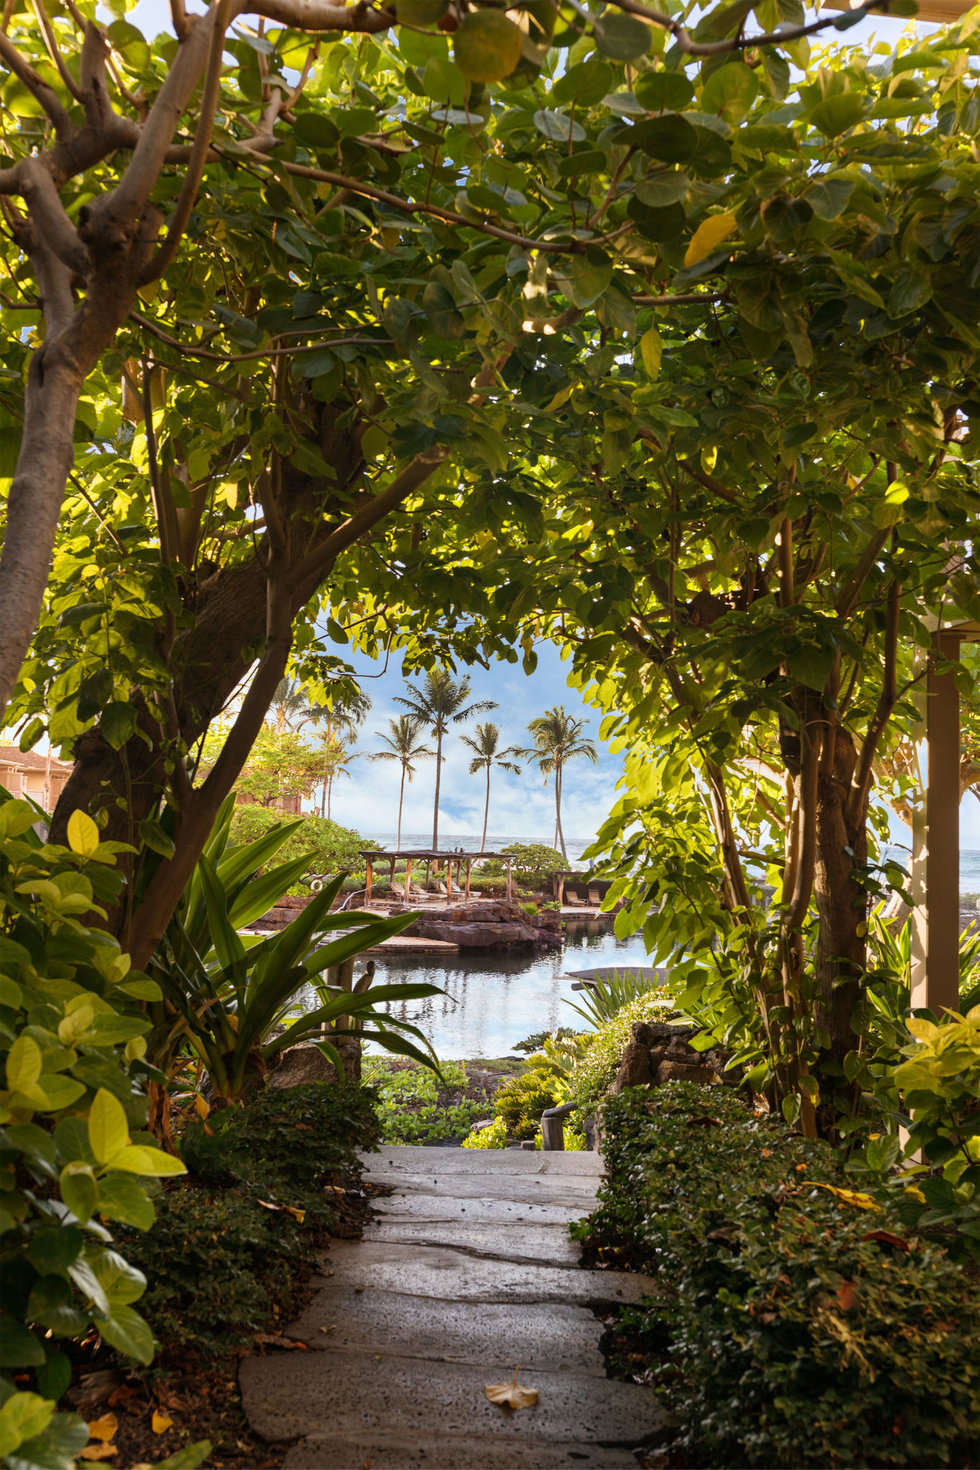 The King's Pond at the Four Seasons Resort Hualalai